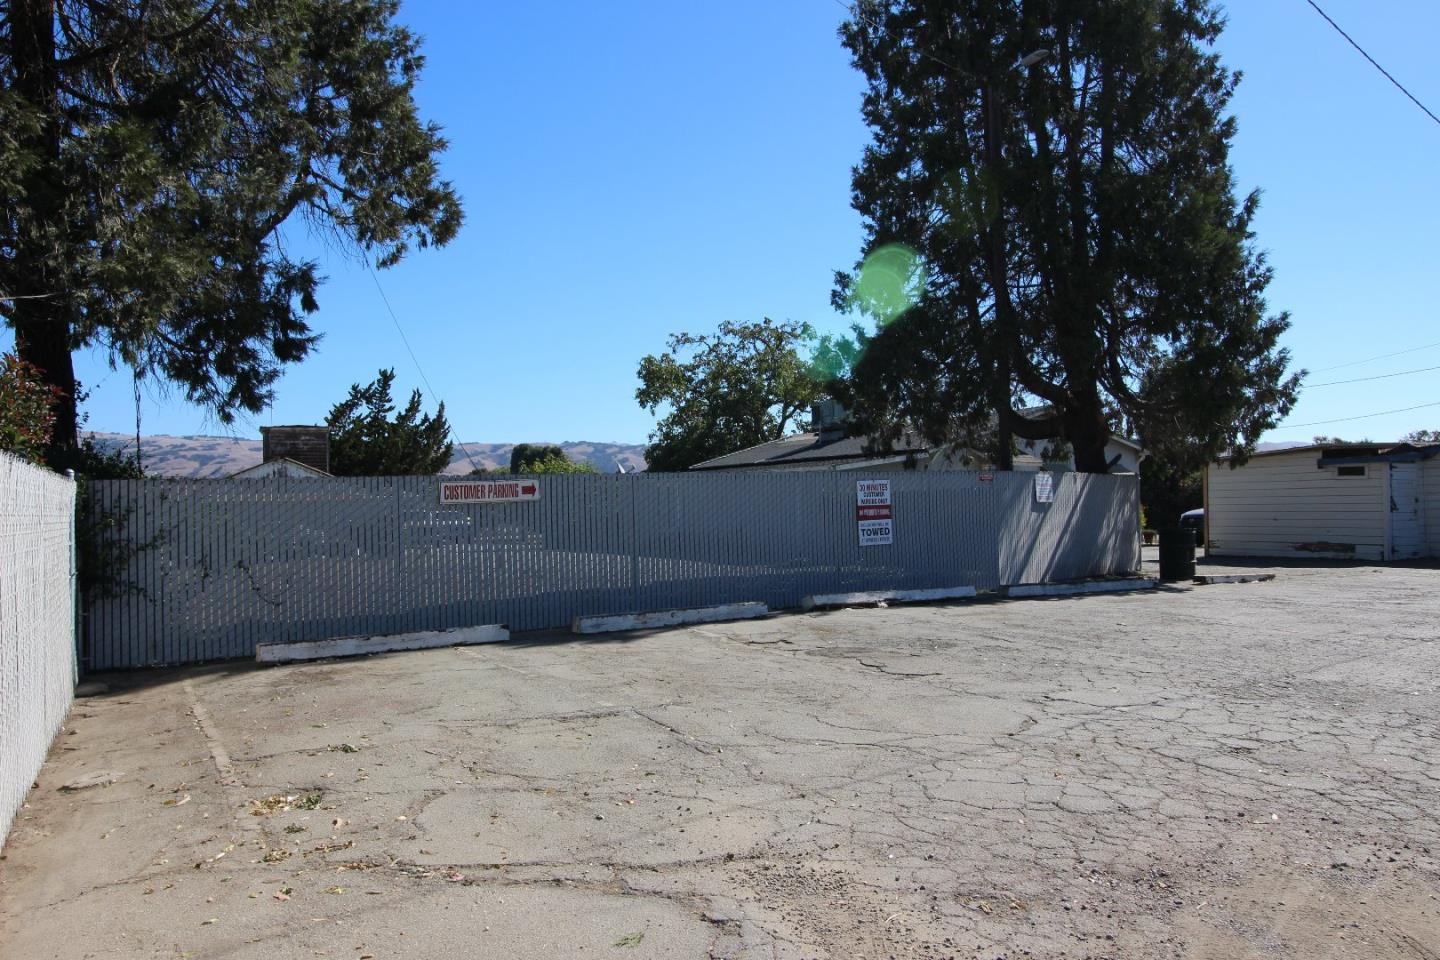 2025 Pacheco Pass Hwy, Gilroy CA 95020 - Photo 2